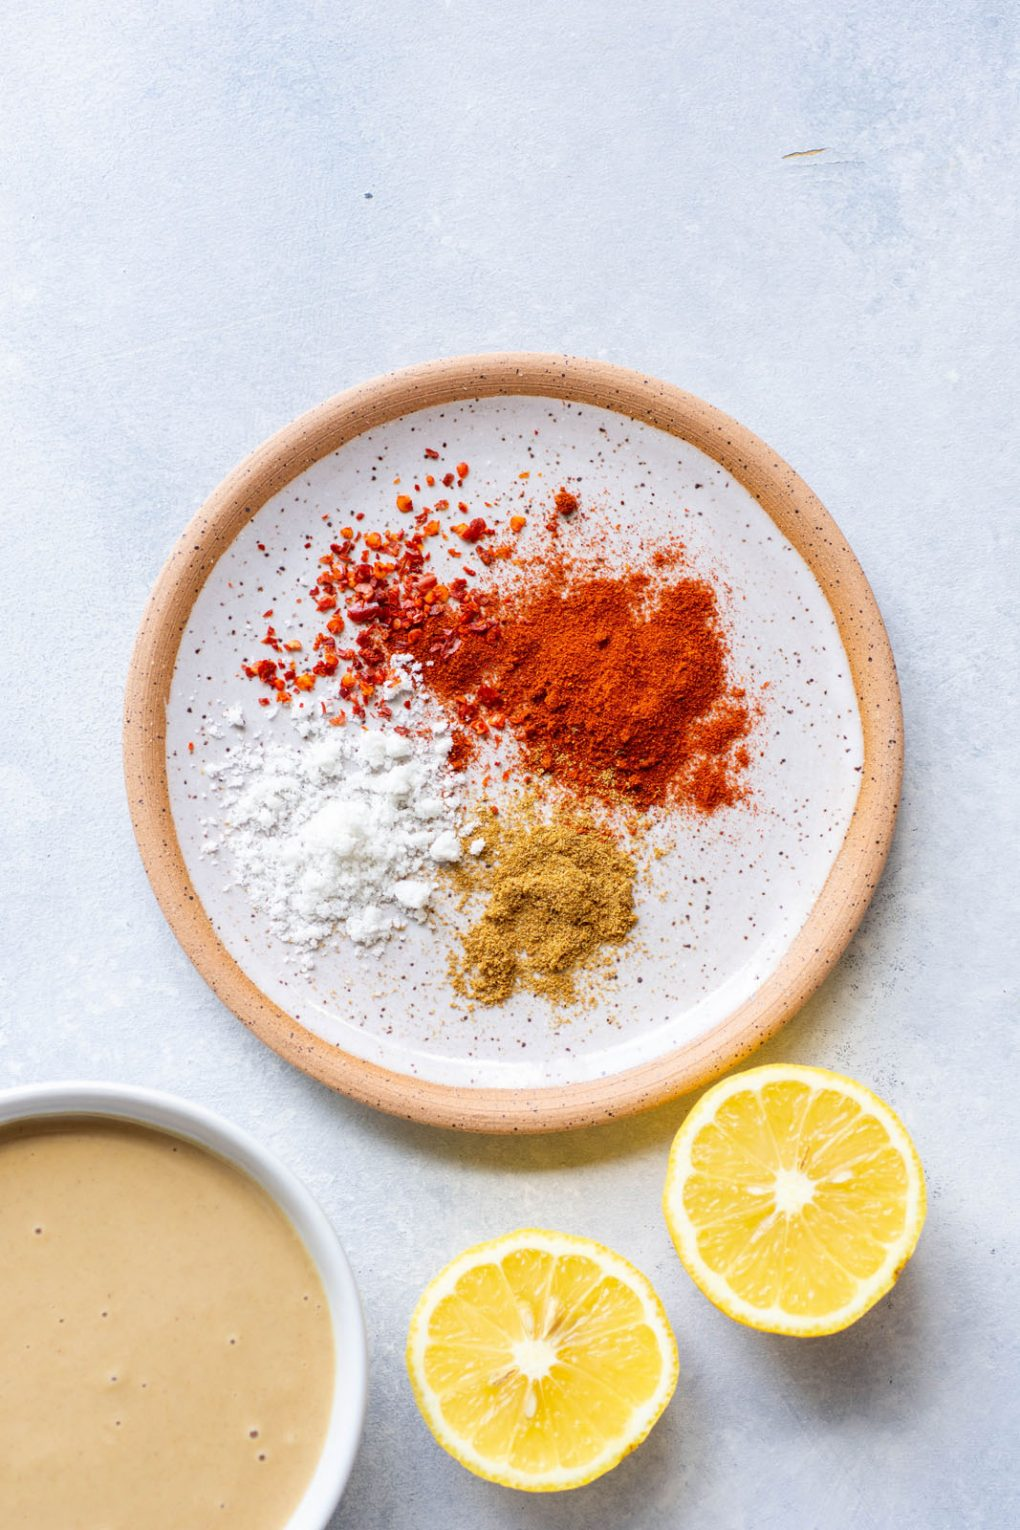 Overhead shot of a small round white plate with a brown rim with flaky sea salt, and an assortment of vibrant spices. On a white background next to a cut lemon and a small bowl of tahini.